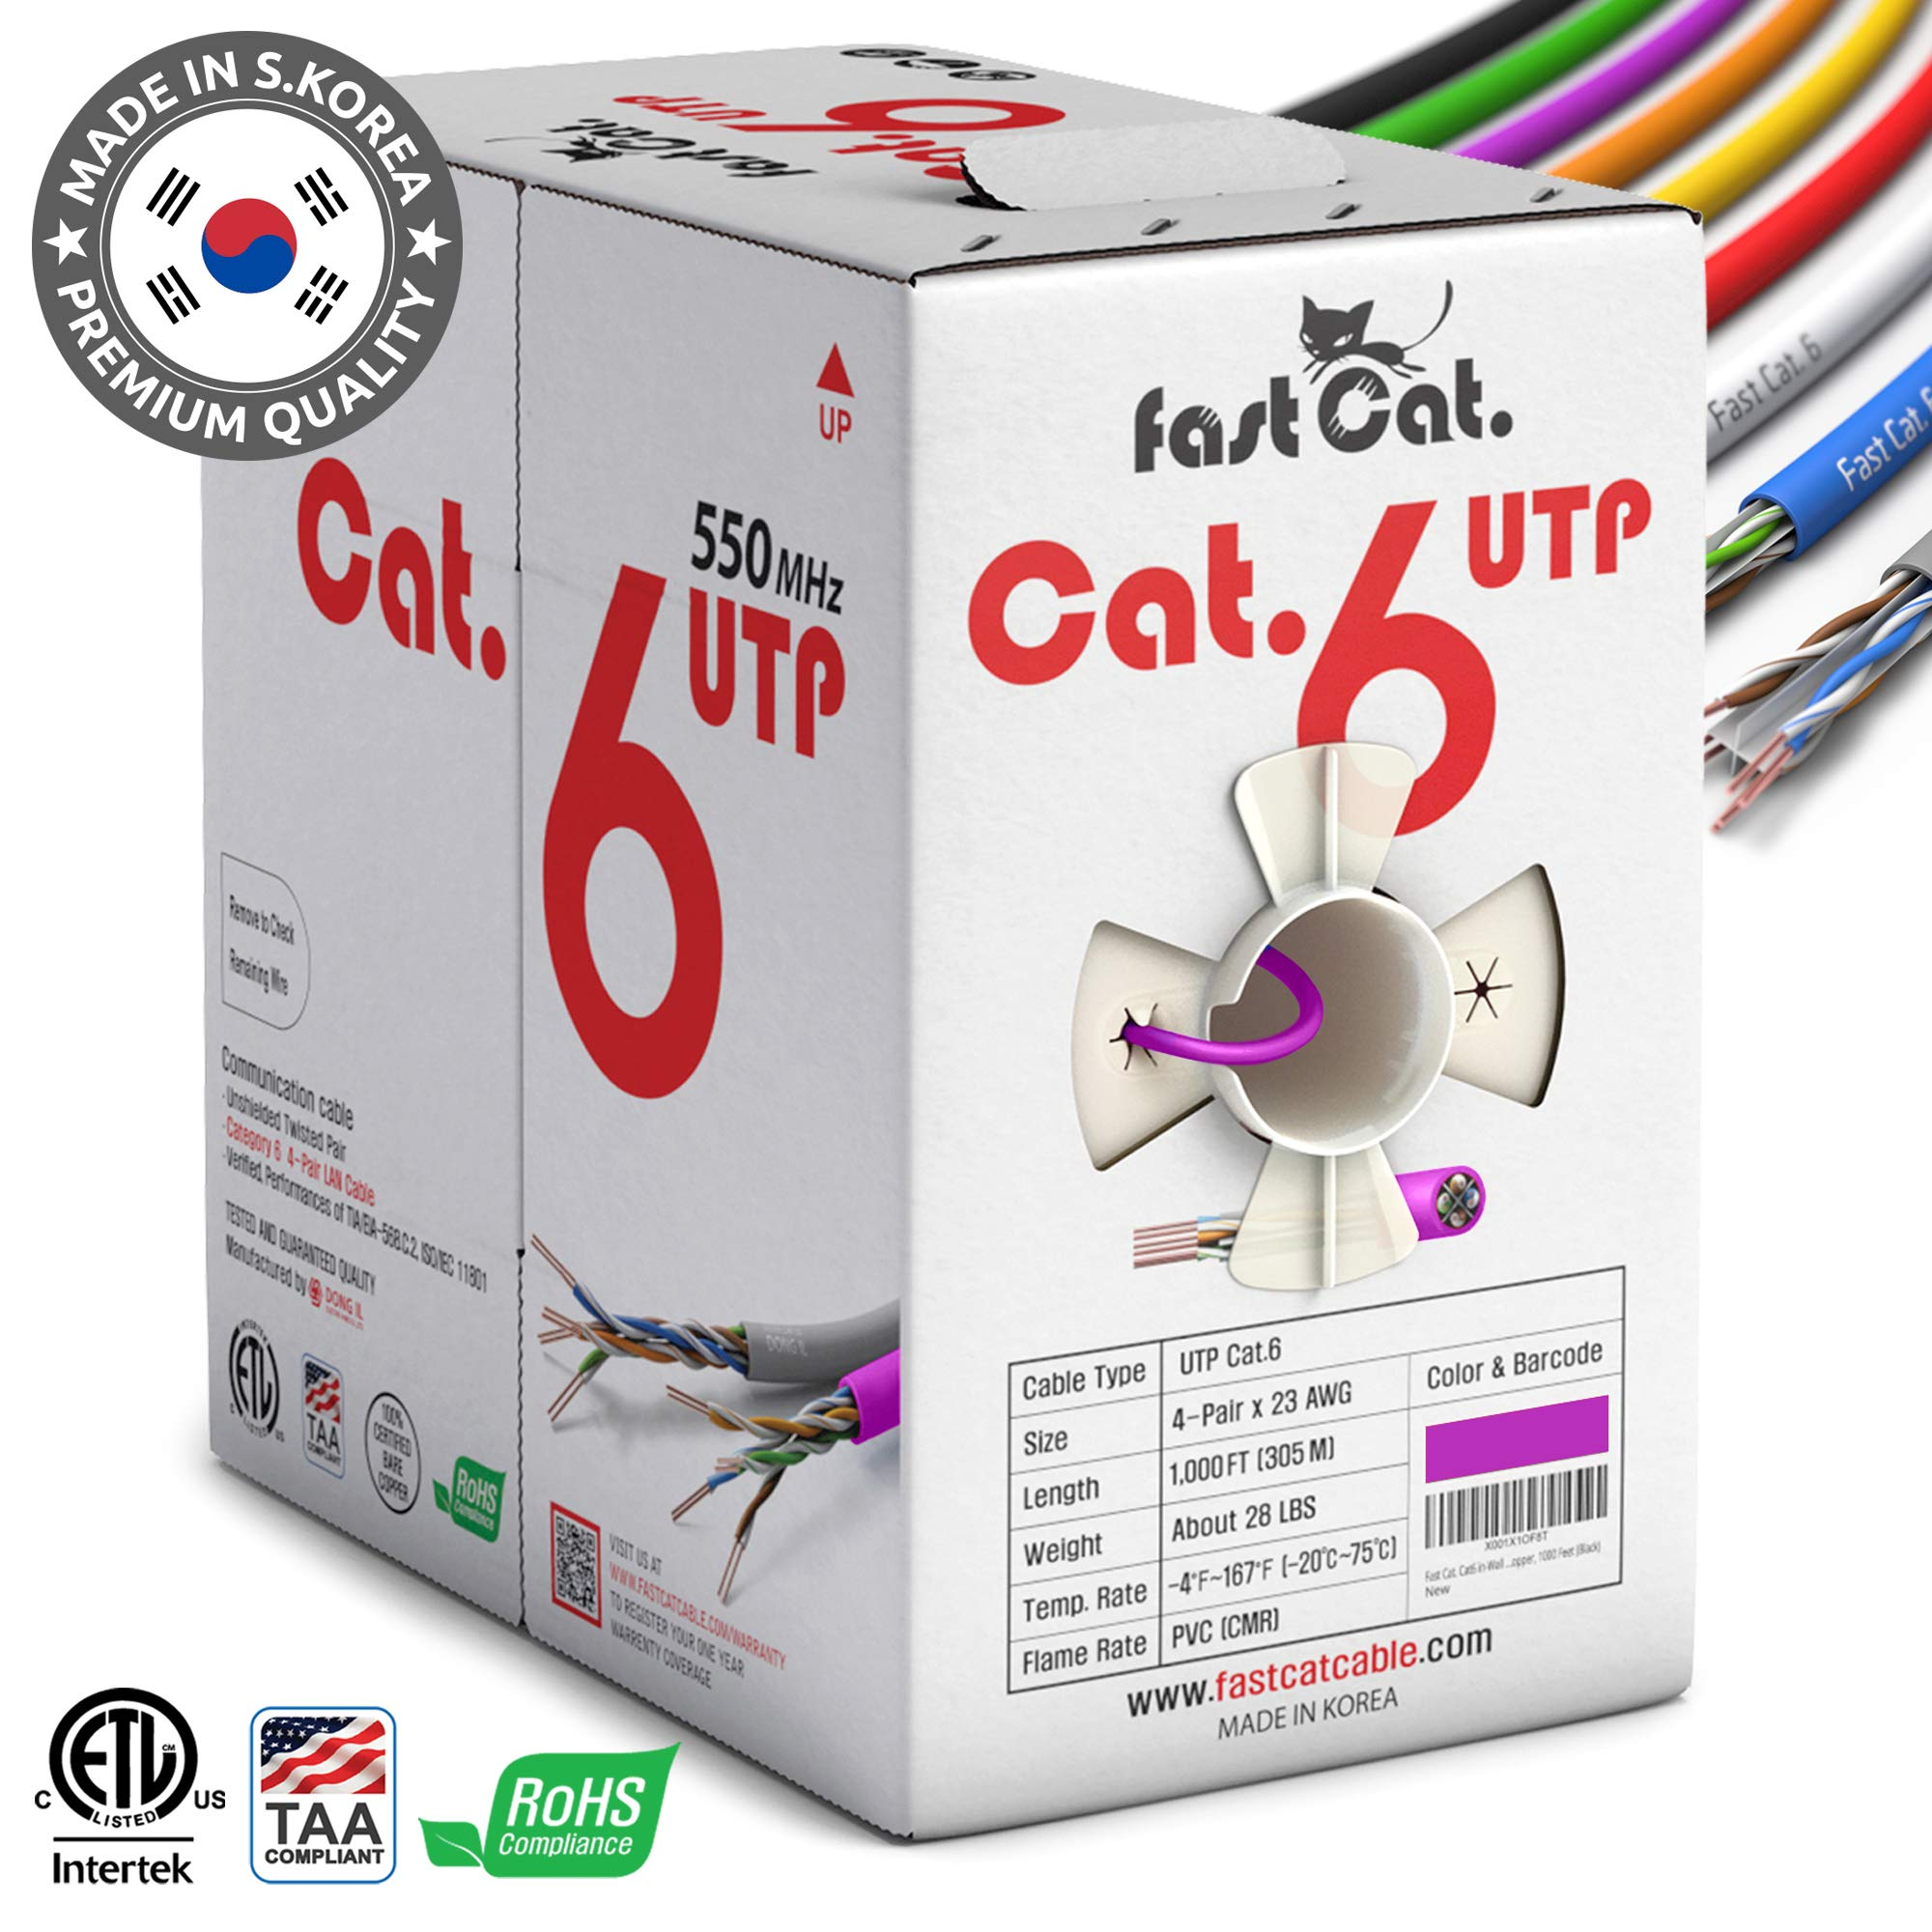 fastCat. Cat6 Ethernet Cable 1000ft - Insulated Bare Copper Wire Internet Cable with Noise Reducing Cross Separator - 550MHZ / 10 Gigabit Speed UTP LAN Cable 1000 ft - CMR (Purple) by fastCat.